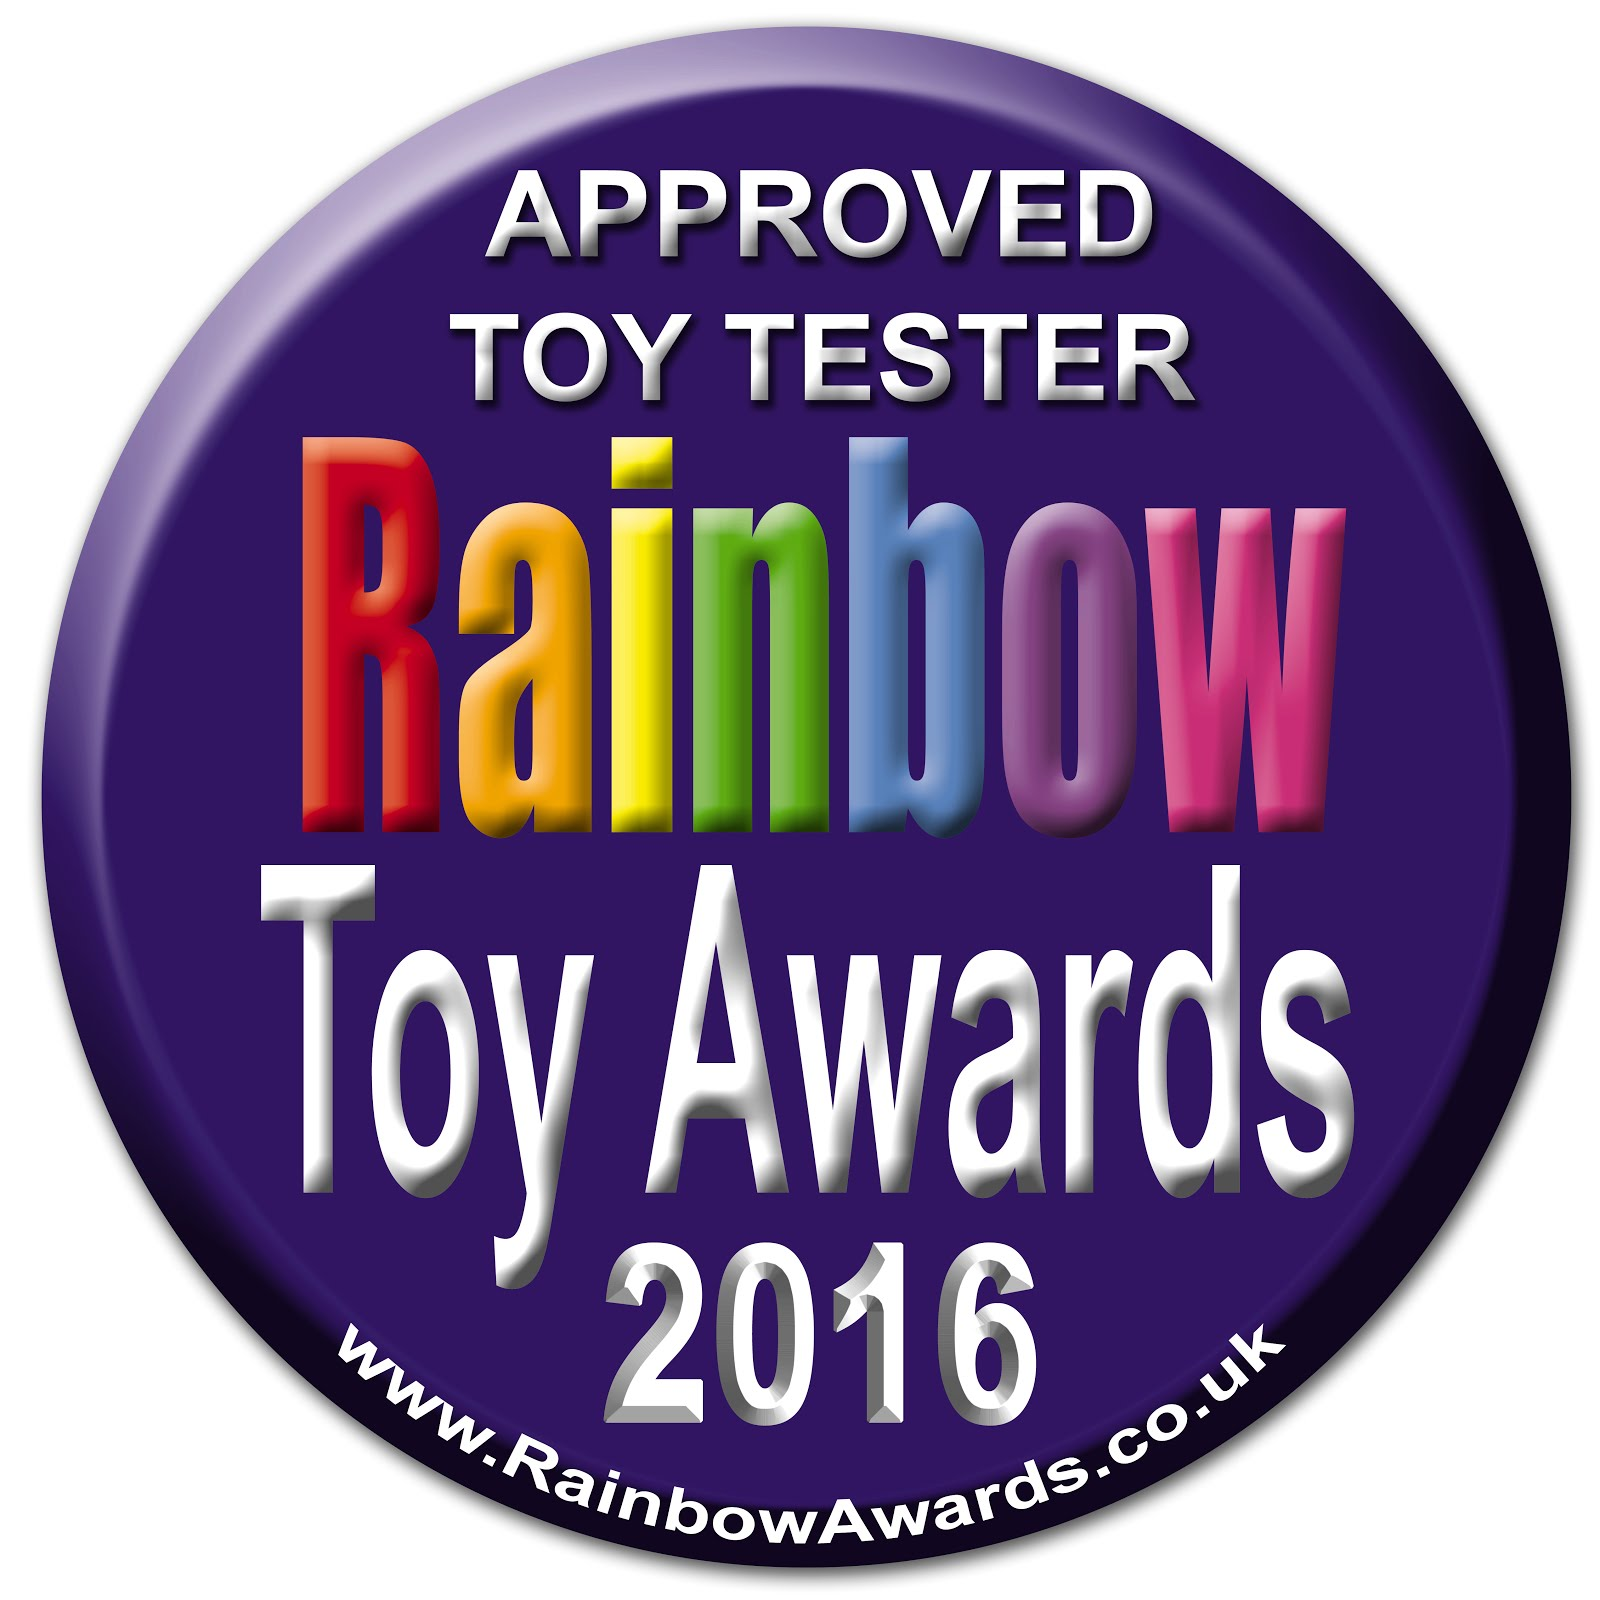 Rainbow Toy Awards